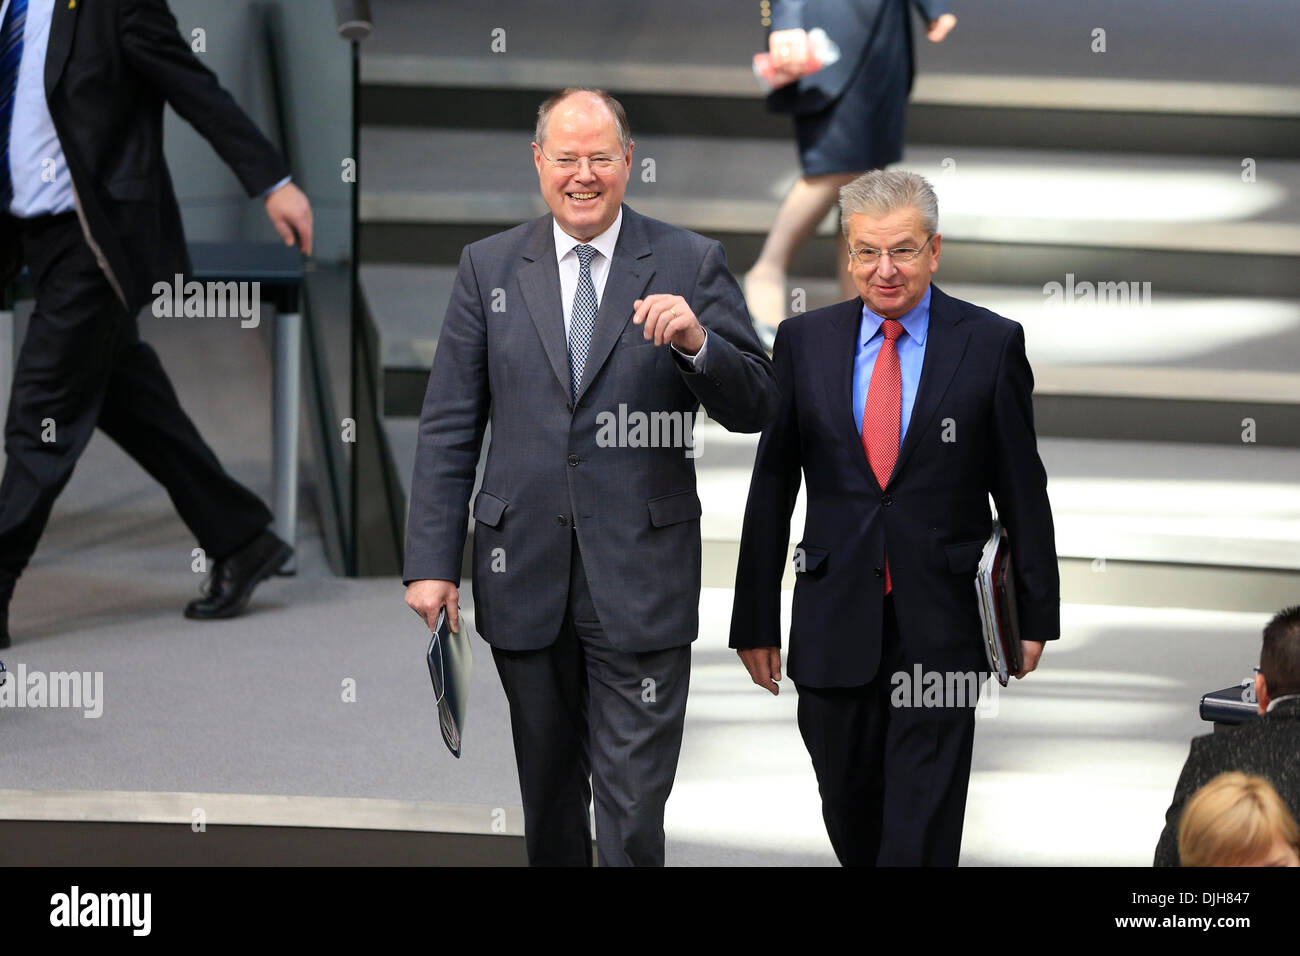 Berlin, Germany. November 28th, 2013. 3. Plenary session (Militar Mission in Sudan) with participation of Chancellor Angela Merkel.  Peer Steinbrueck (SPD), MP. Credit:  Reynaldo Chaib Paganelli/Alamy Live News - Stock Image